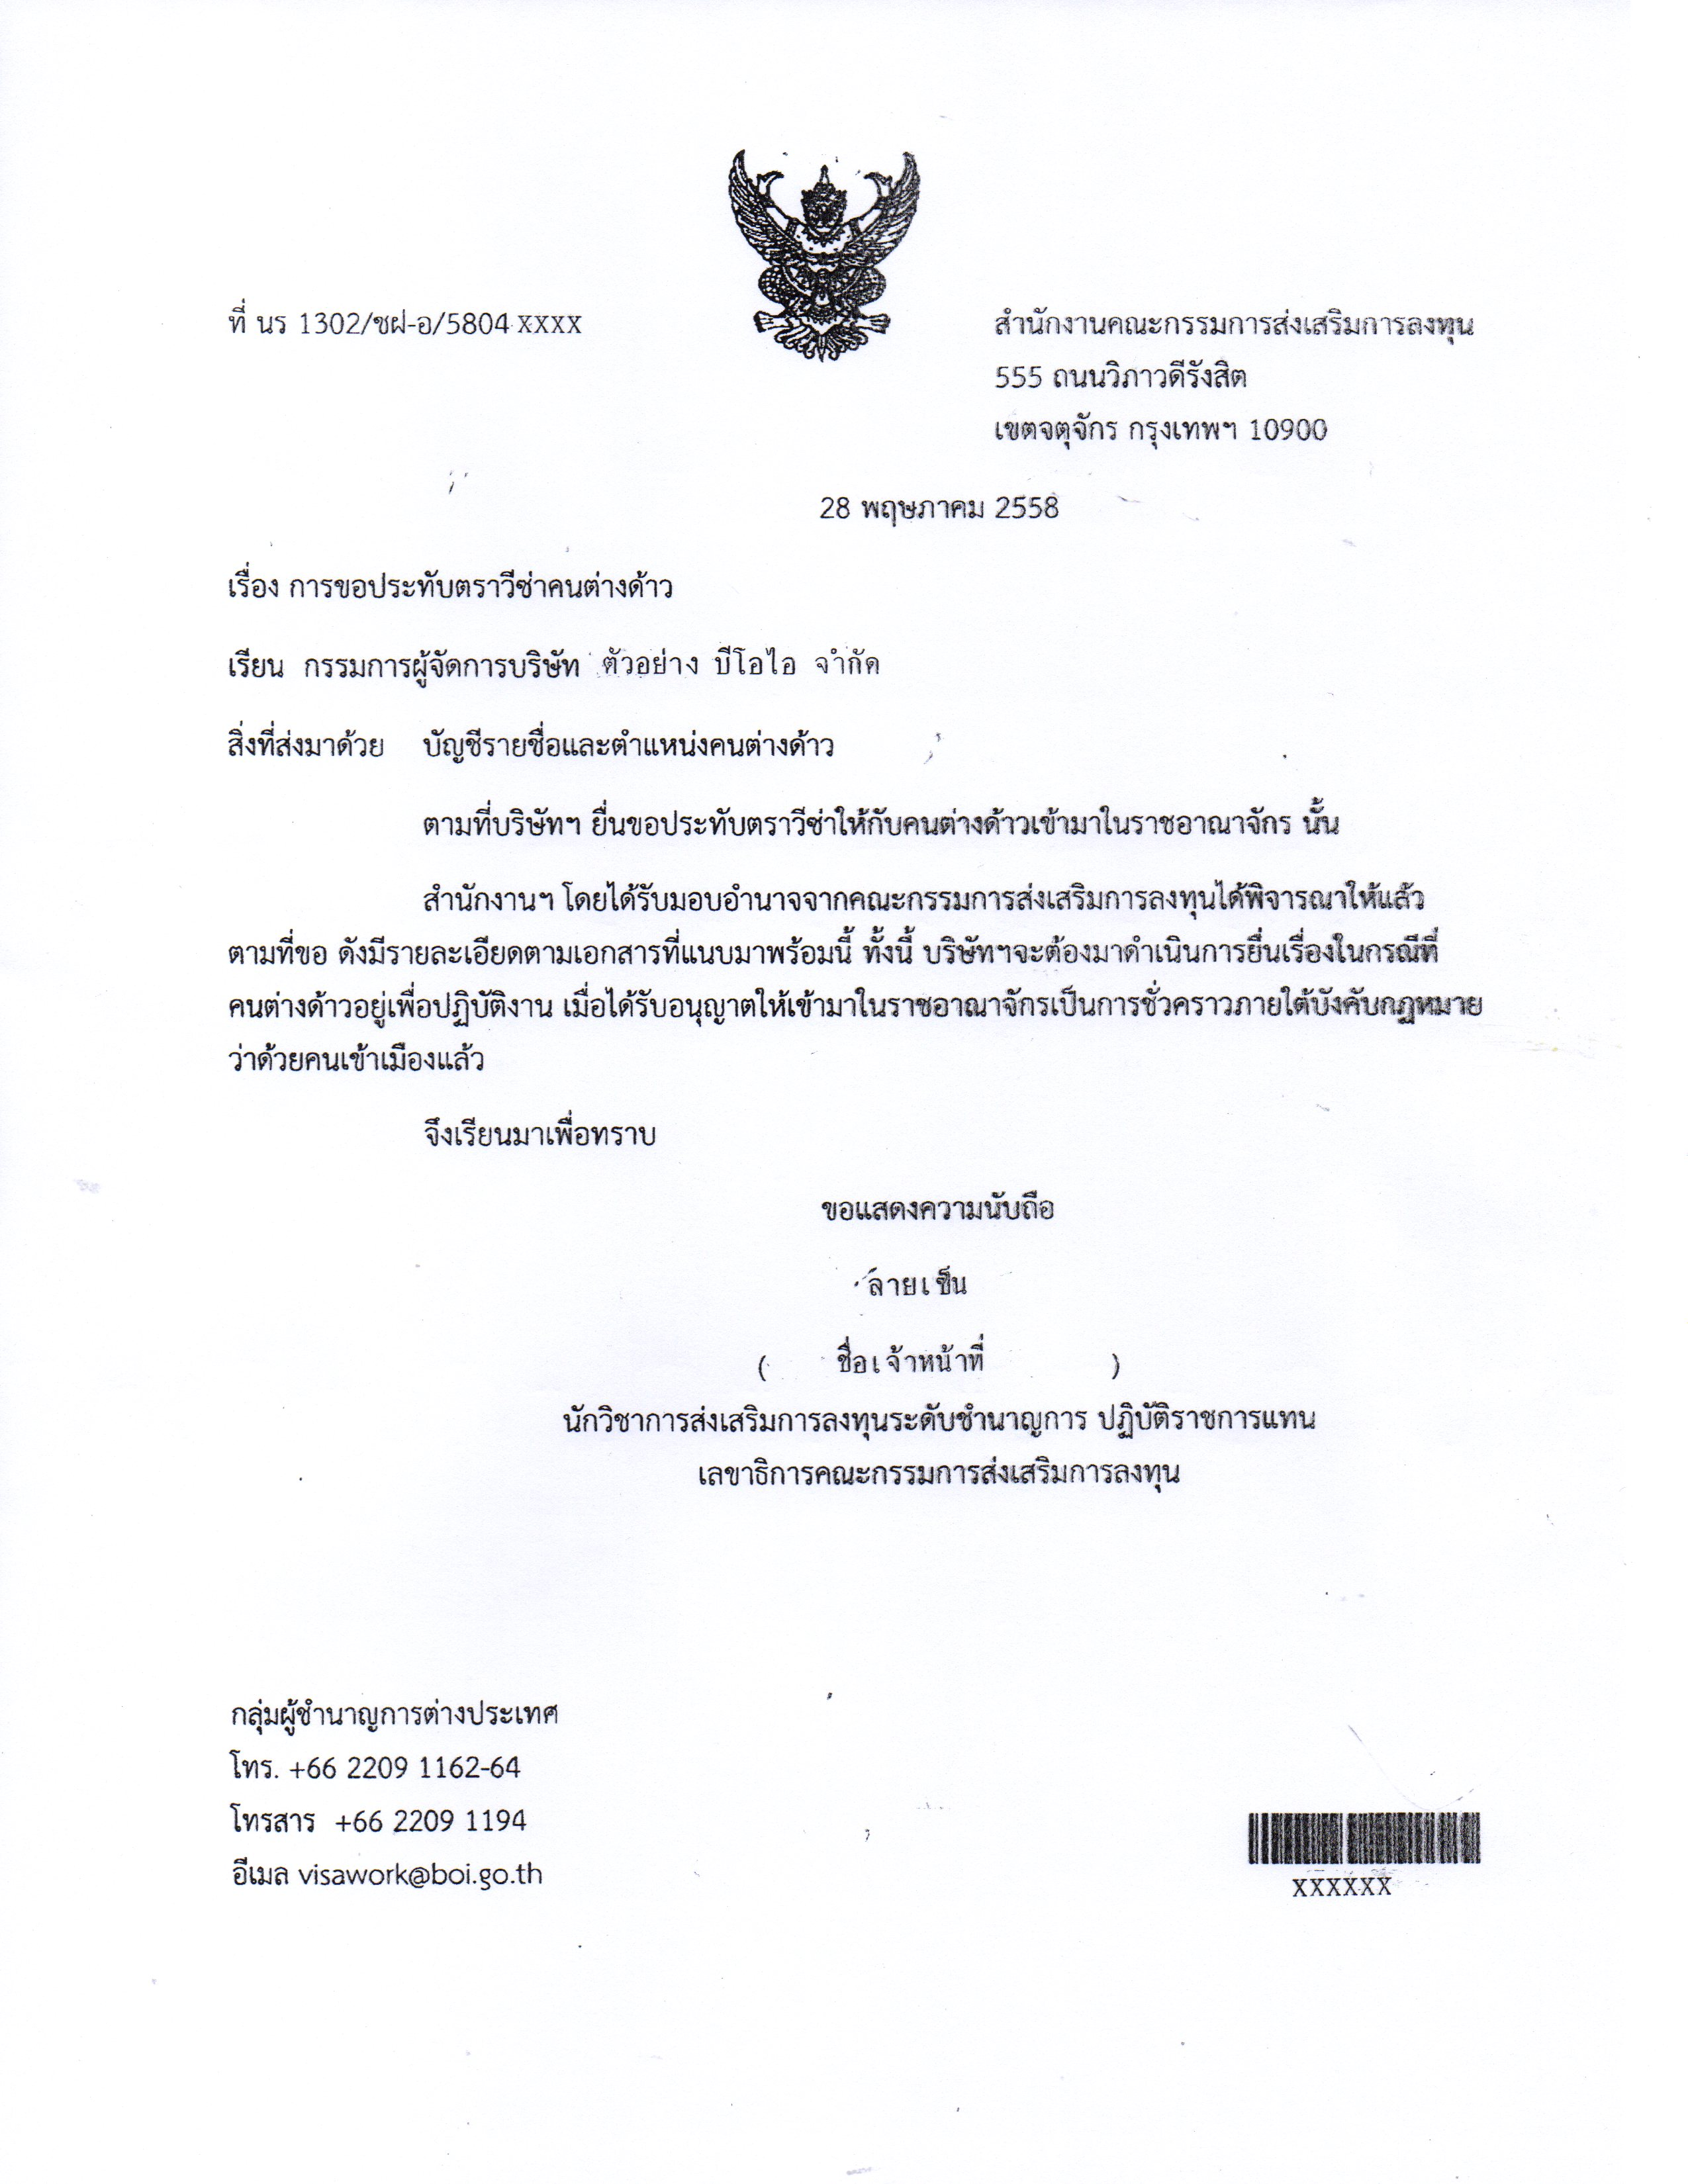 How to get a visa for foreign workers of a thailand boi company boi visa letter page 1 stopboris Choice Image